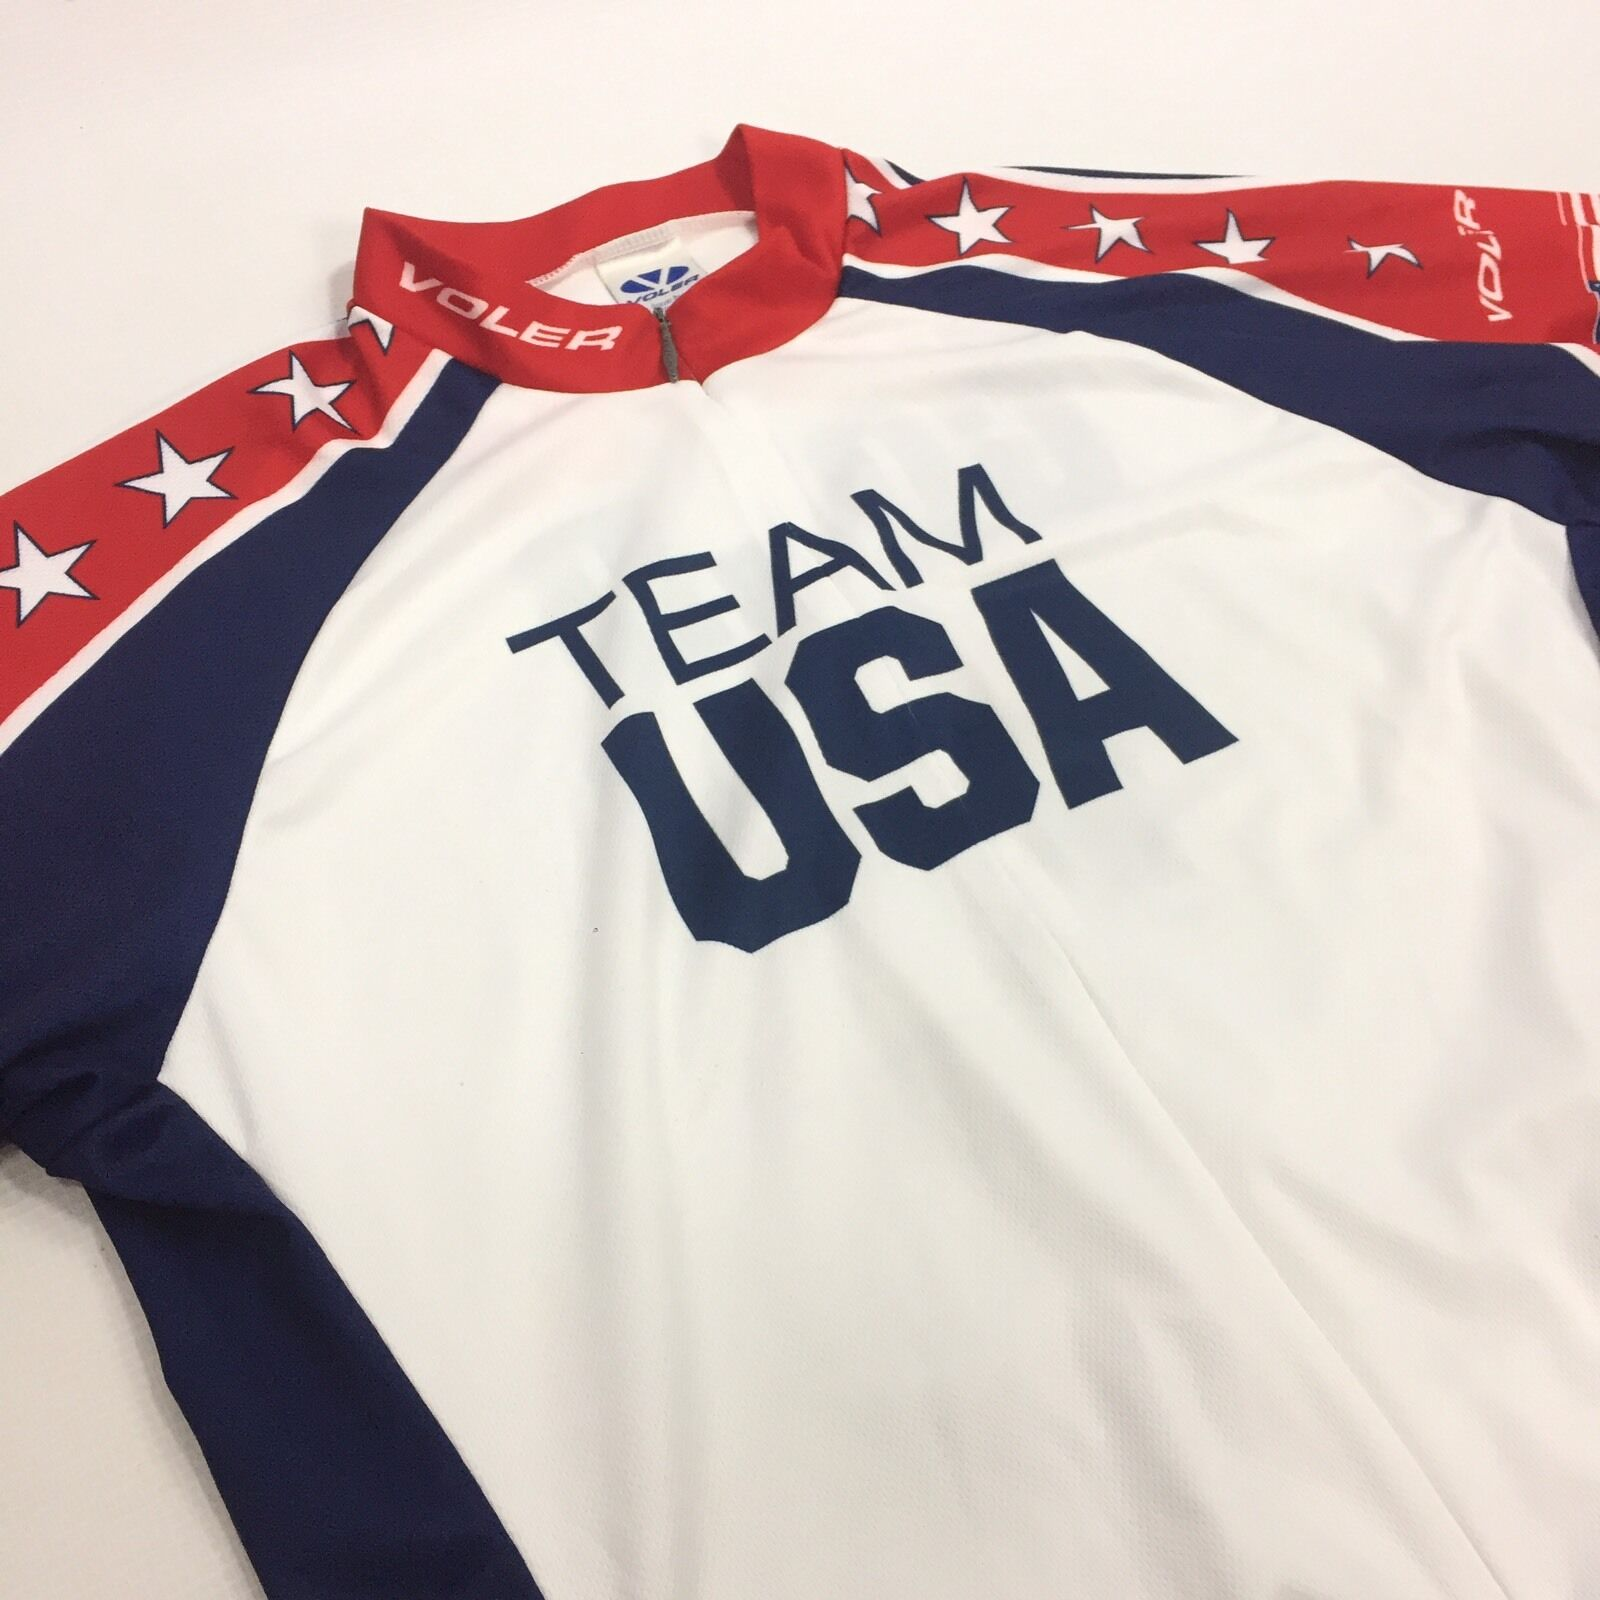 VOLER Team USA Ride for gold Cycling Jersey Men's XL  Club Raglan Made in USA NEW  on sale 70% off